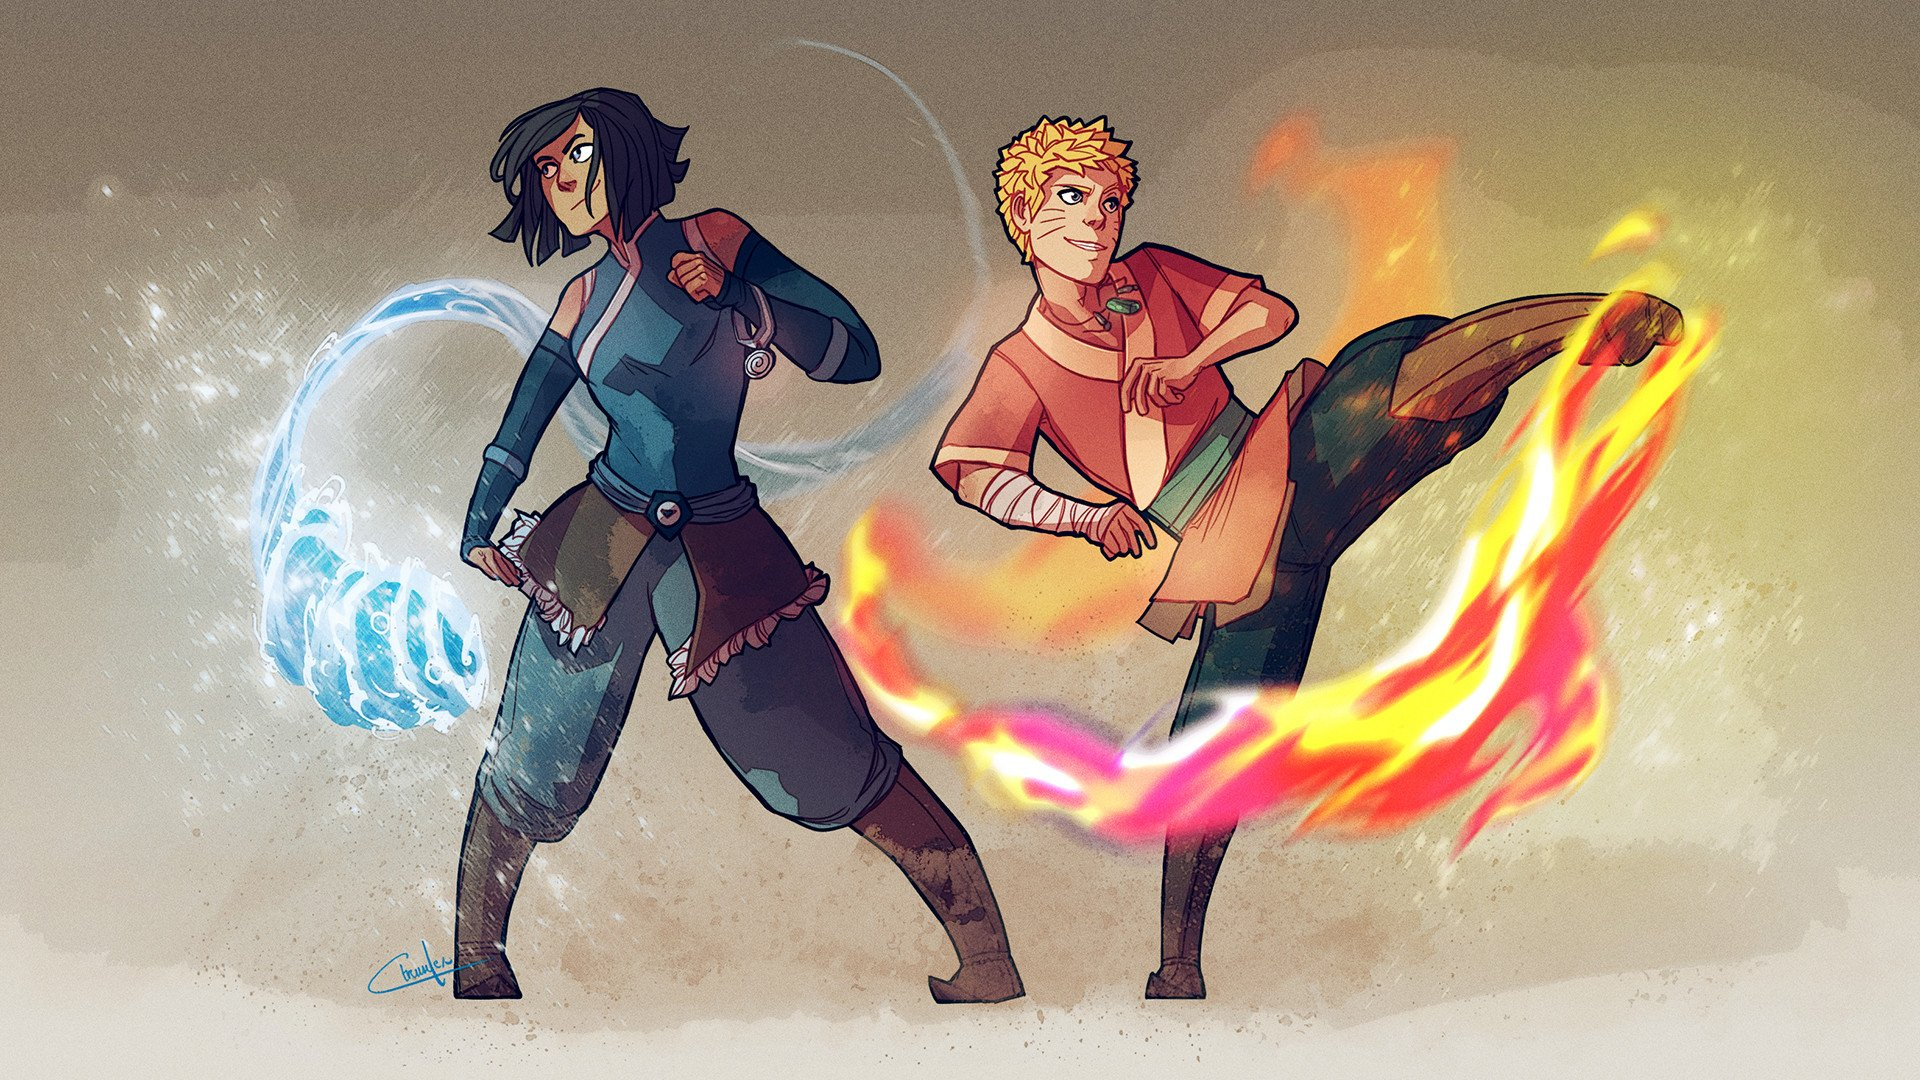 30 Fan Redesigns Of Avatar And Legend Of Korra Characters ...  30 Fan Redesign...